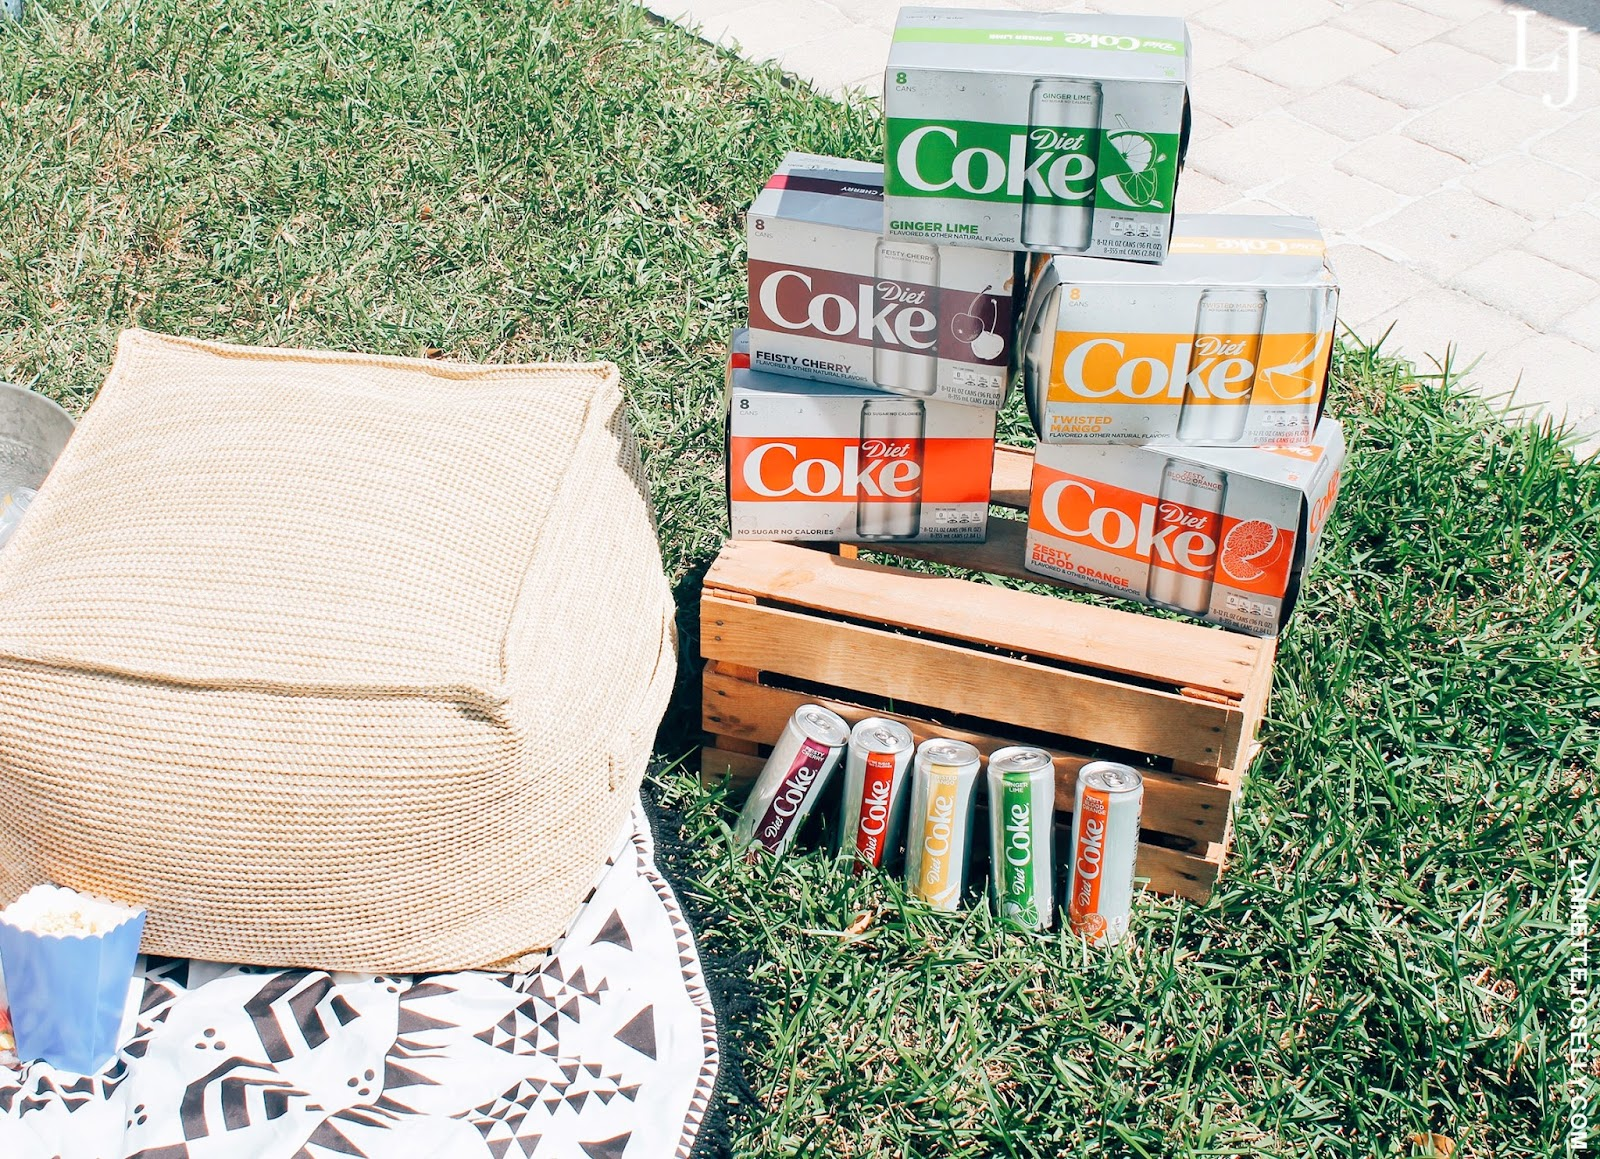 diy-outdoor-movie-night-diet-coke-new-flavors